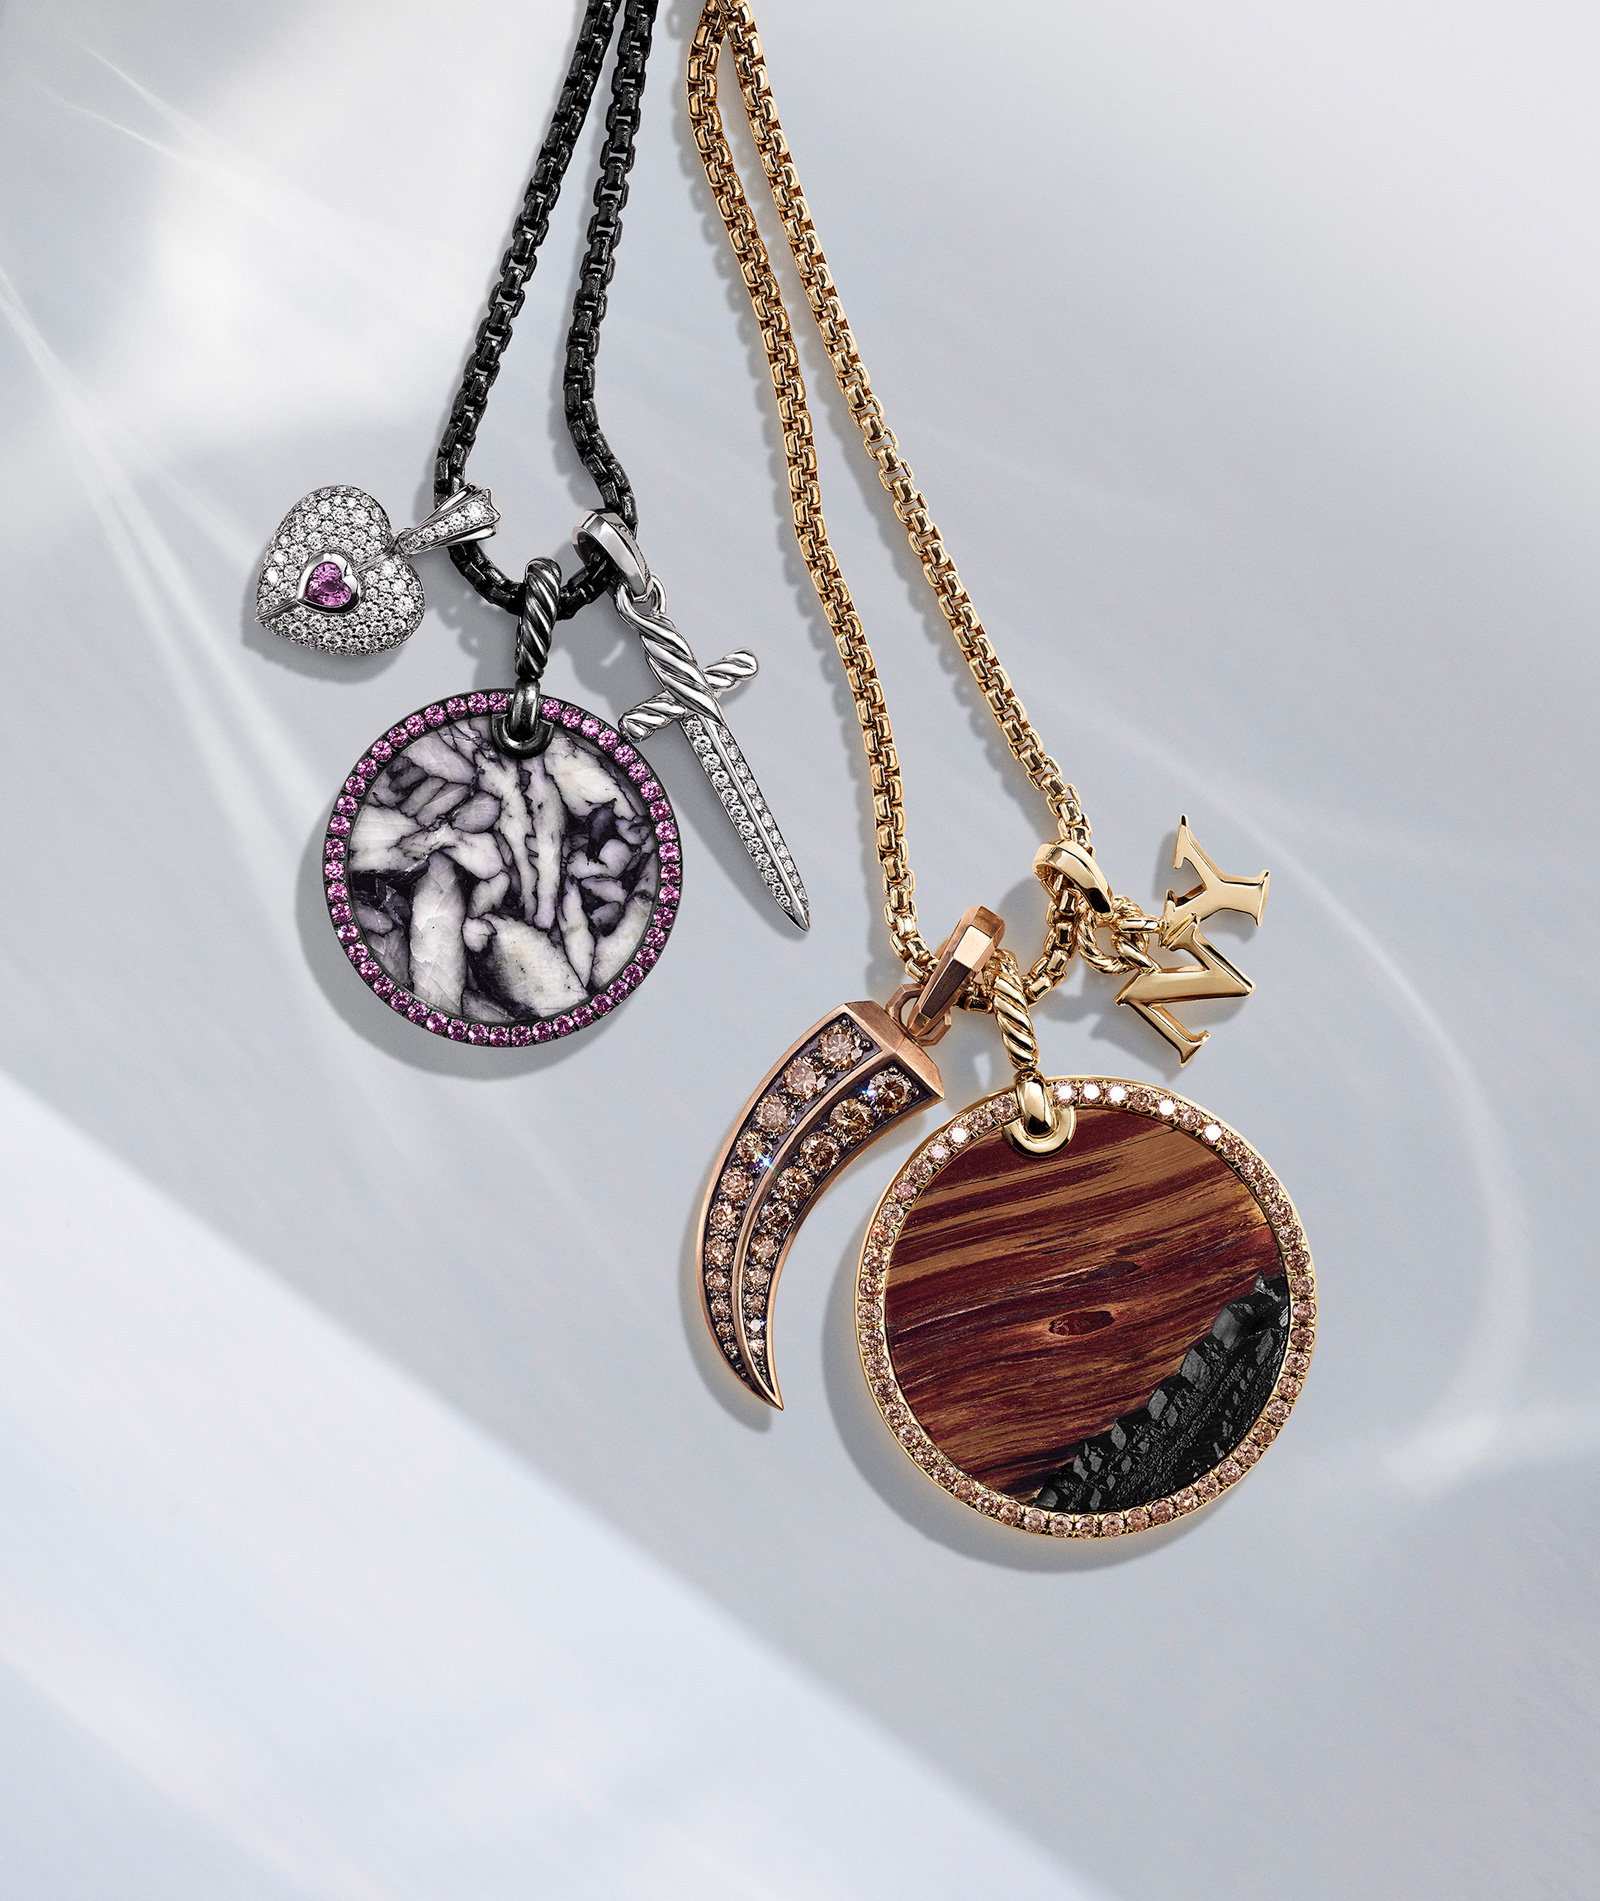 "A color photograph shows two David Yurman chain necklaces placed on a white surface, each strung with three amulets each. The amulets come in various shapes, including circles, a heart, dagger, horn and the letters ""NY."" The jewelry is crafted from 18K yellow, rose or white gold, or darkened sterling silver with or without tiger's eye, yellow sapphires, white or cognac diamonds, pinolith, rubies or pink sapphire."